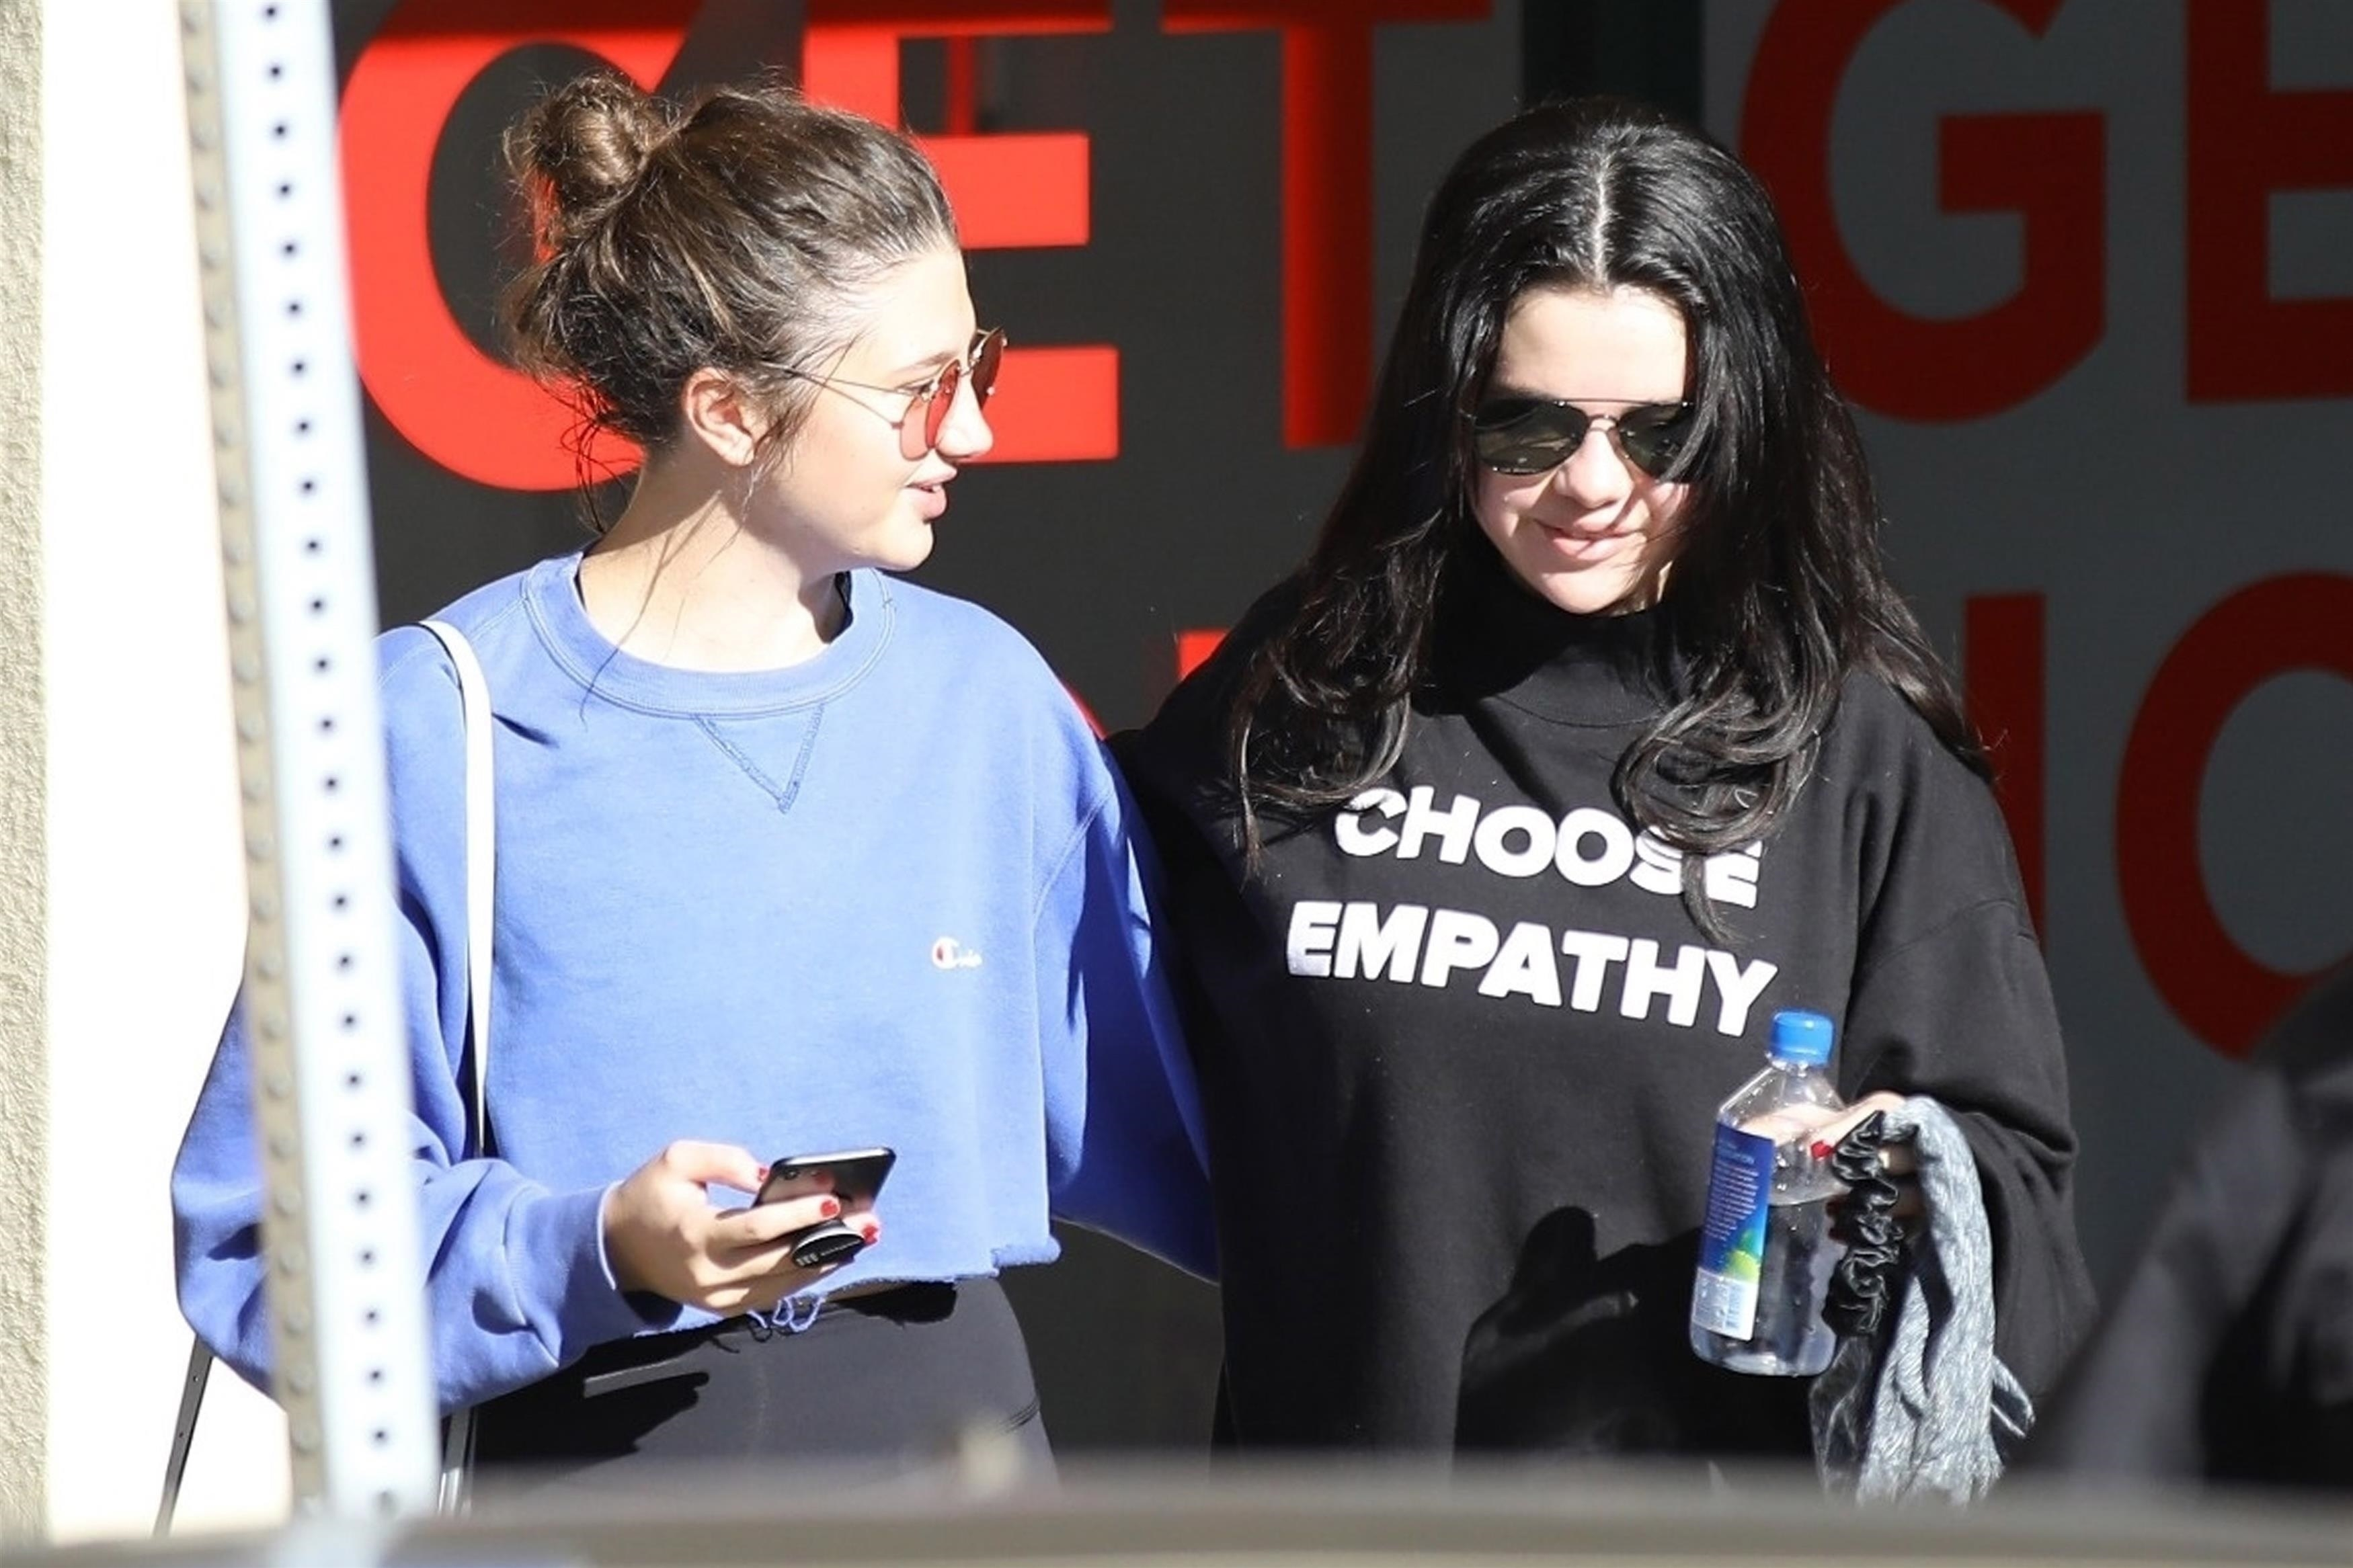 Selena Gomez shows empathy helping out the needy after her pilates class